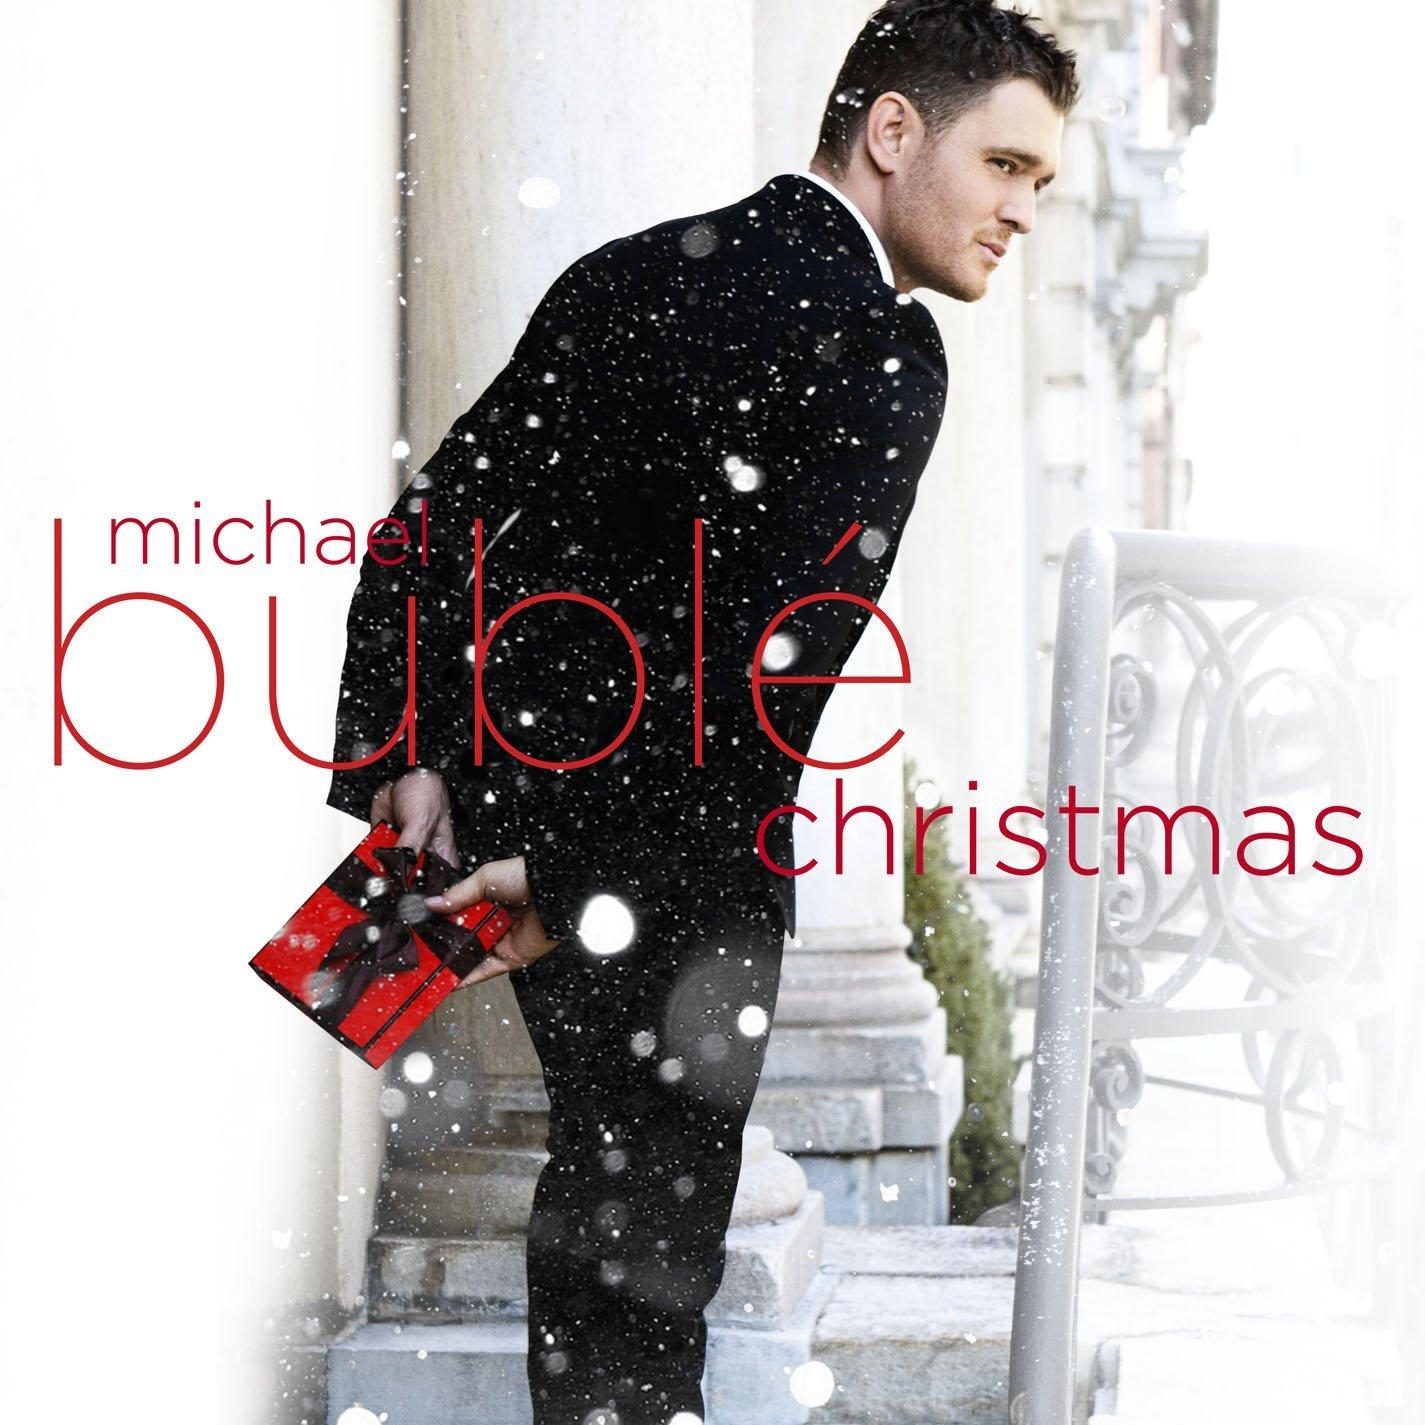 Michael Buble poses for his Christmas album.